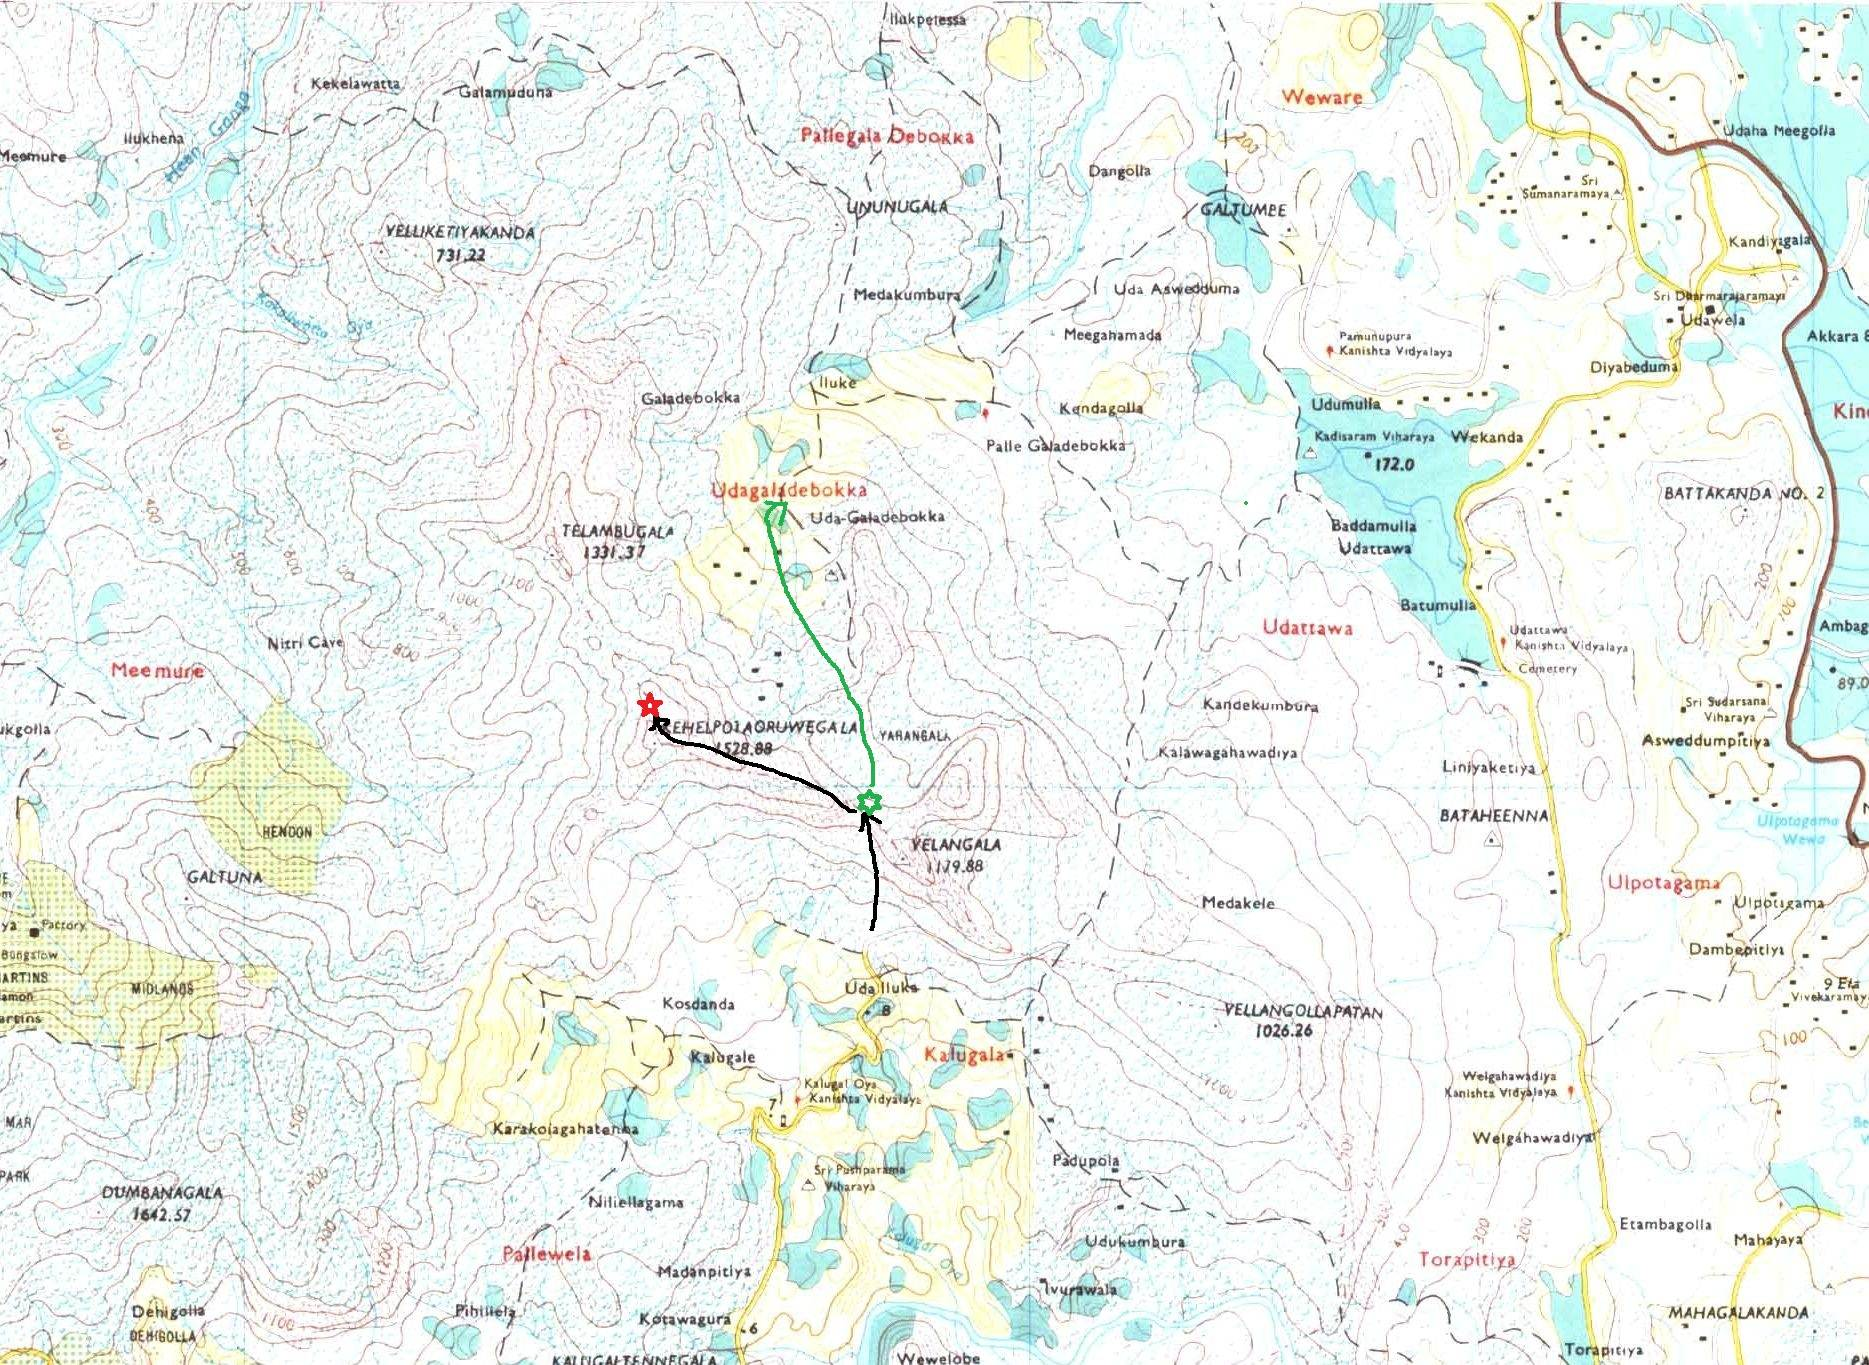 Black arrow till green star shows the pathway towards Velangolla Pathana from Kalugala. Then black arrow shows our hiking towards the peak of Kehelpothdoruwegala peak (in red star). Green arrow shows our pathway to Udagaldebokka village.